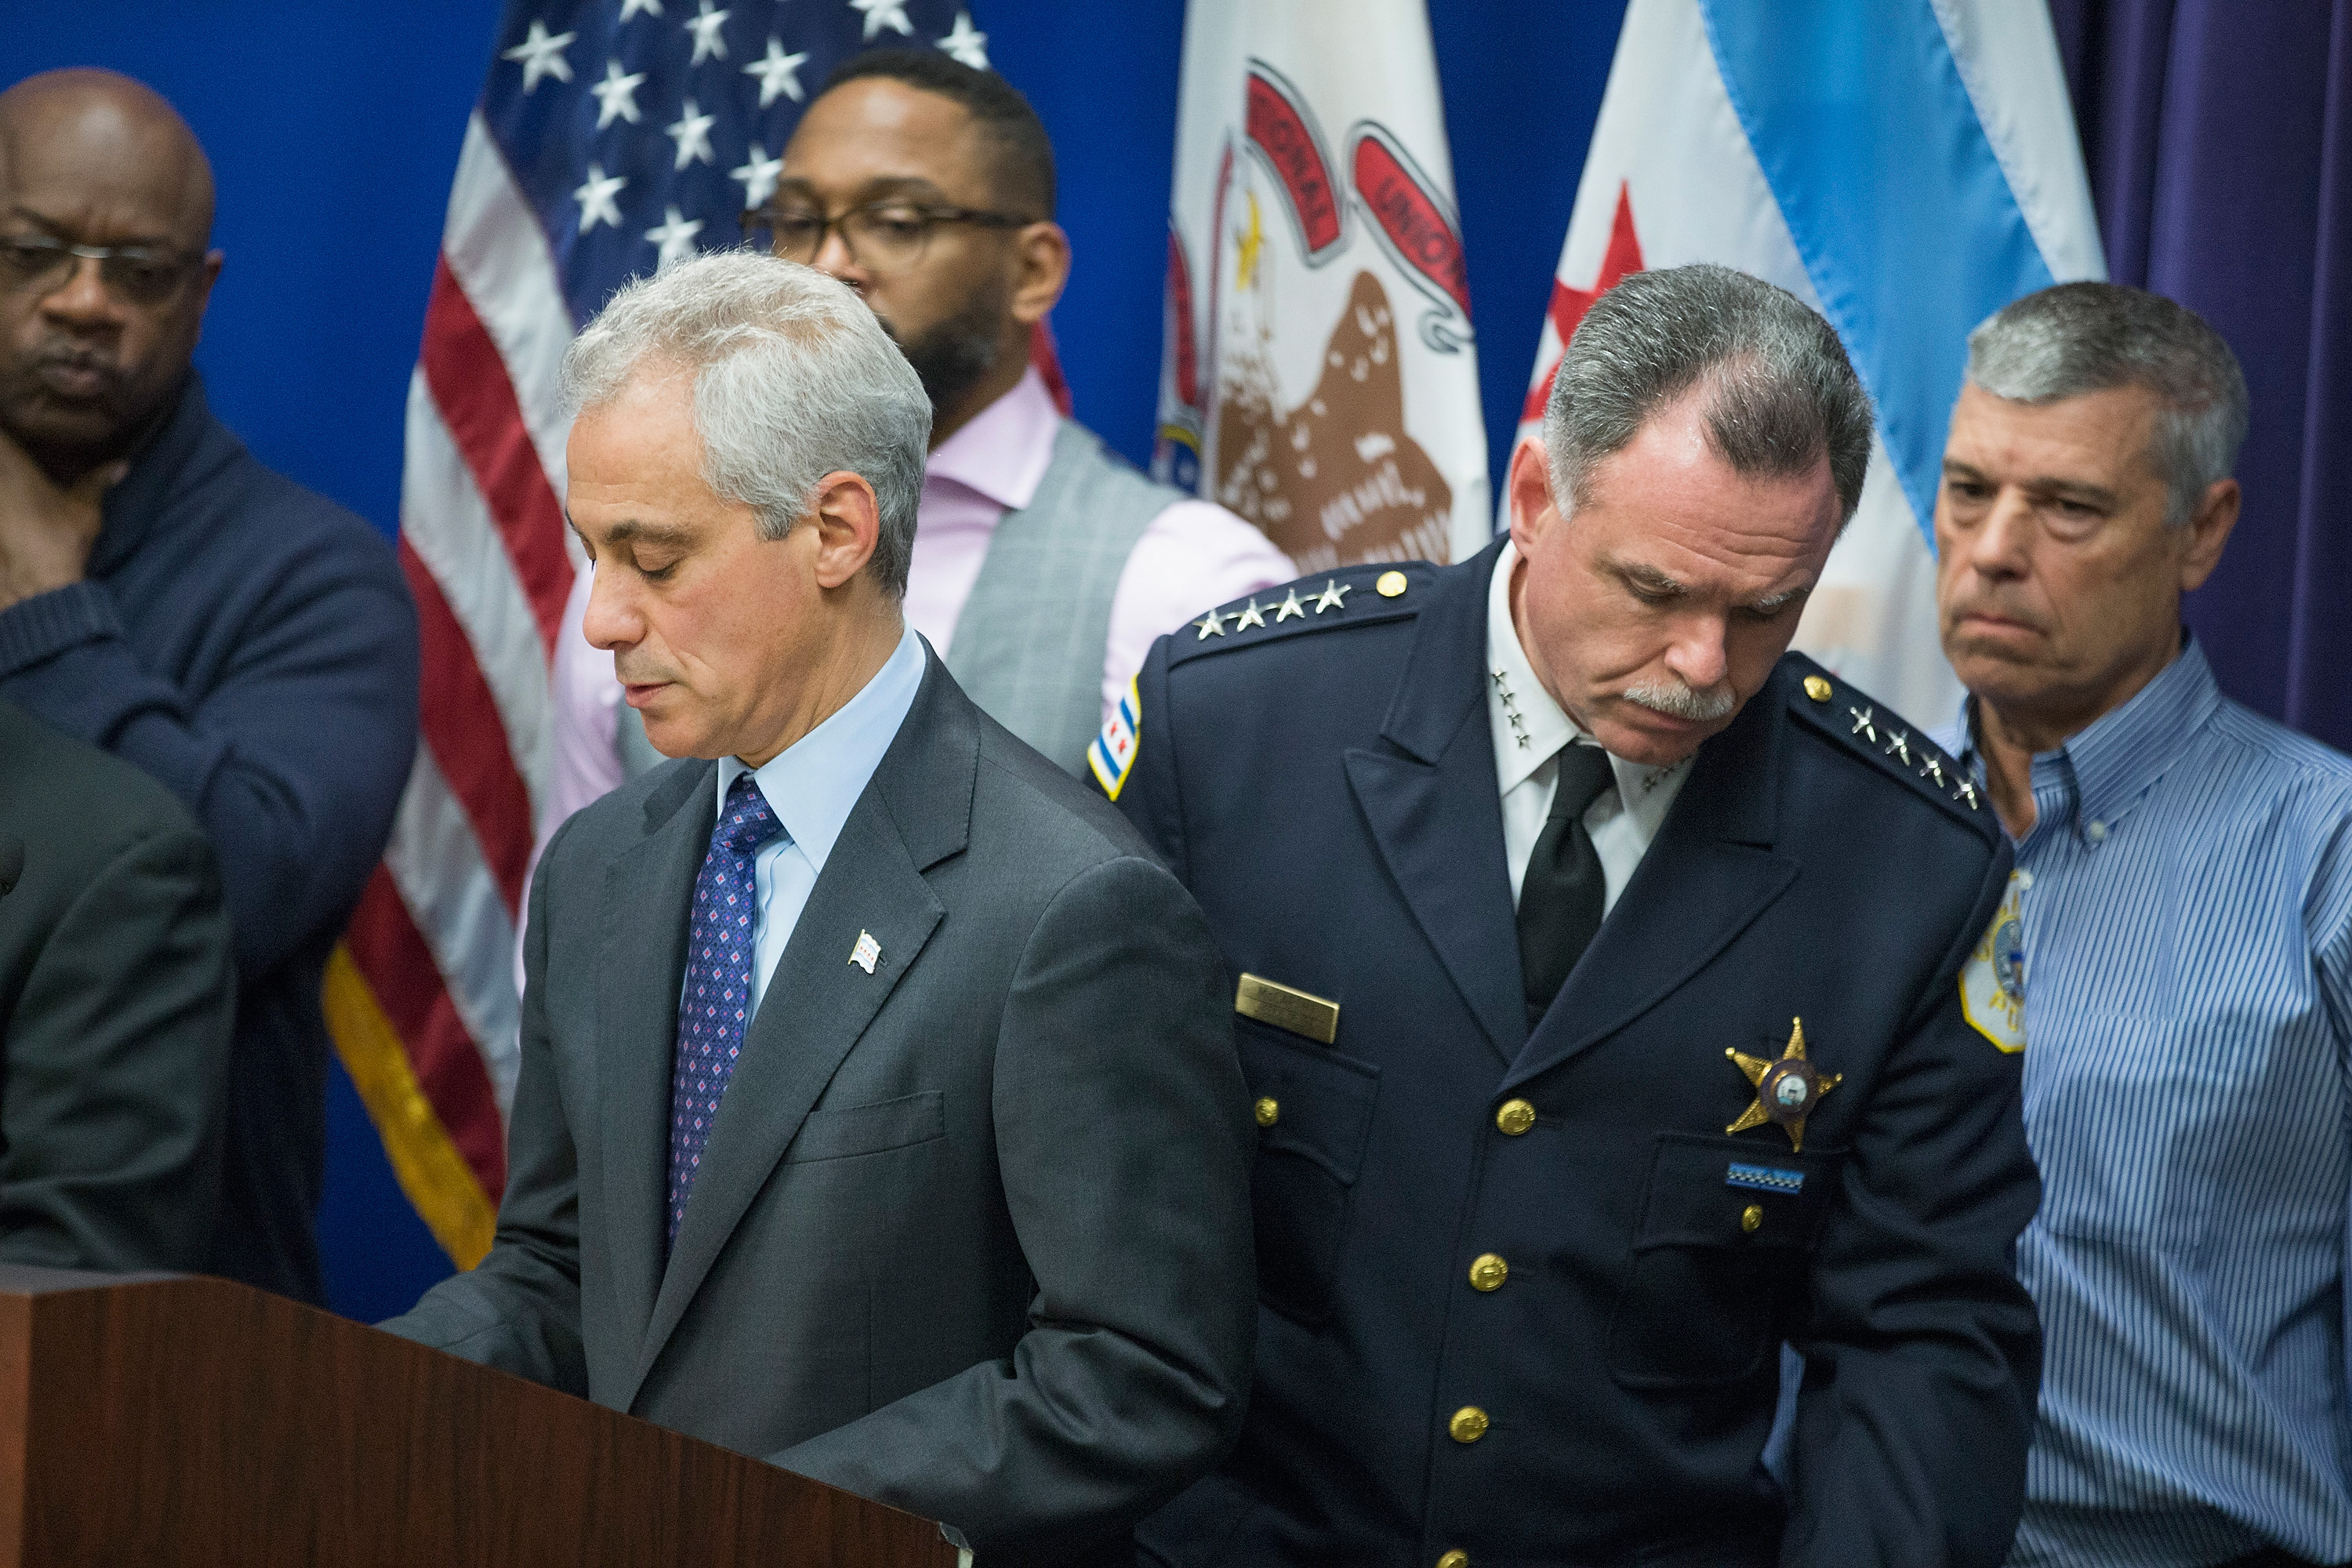 Mayor Rahm Emanuel, left, and Chicago Police Superintendent Garry McCarthy hold a  press conference to address the arrest of Chicago Police officer Jason Van Dyke on November 24, 2015. (Getty)